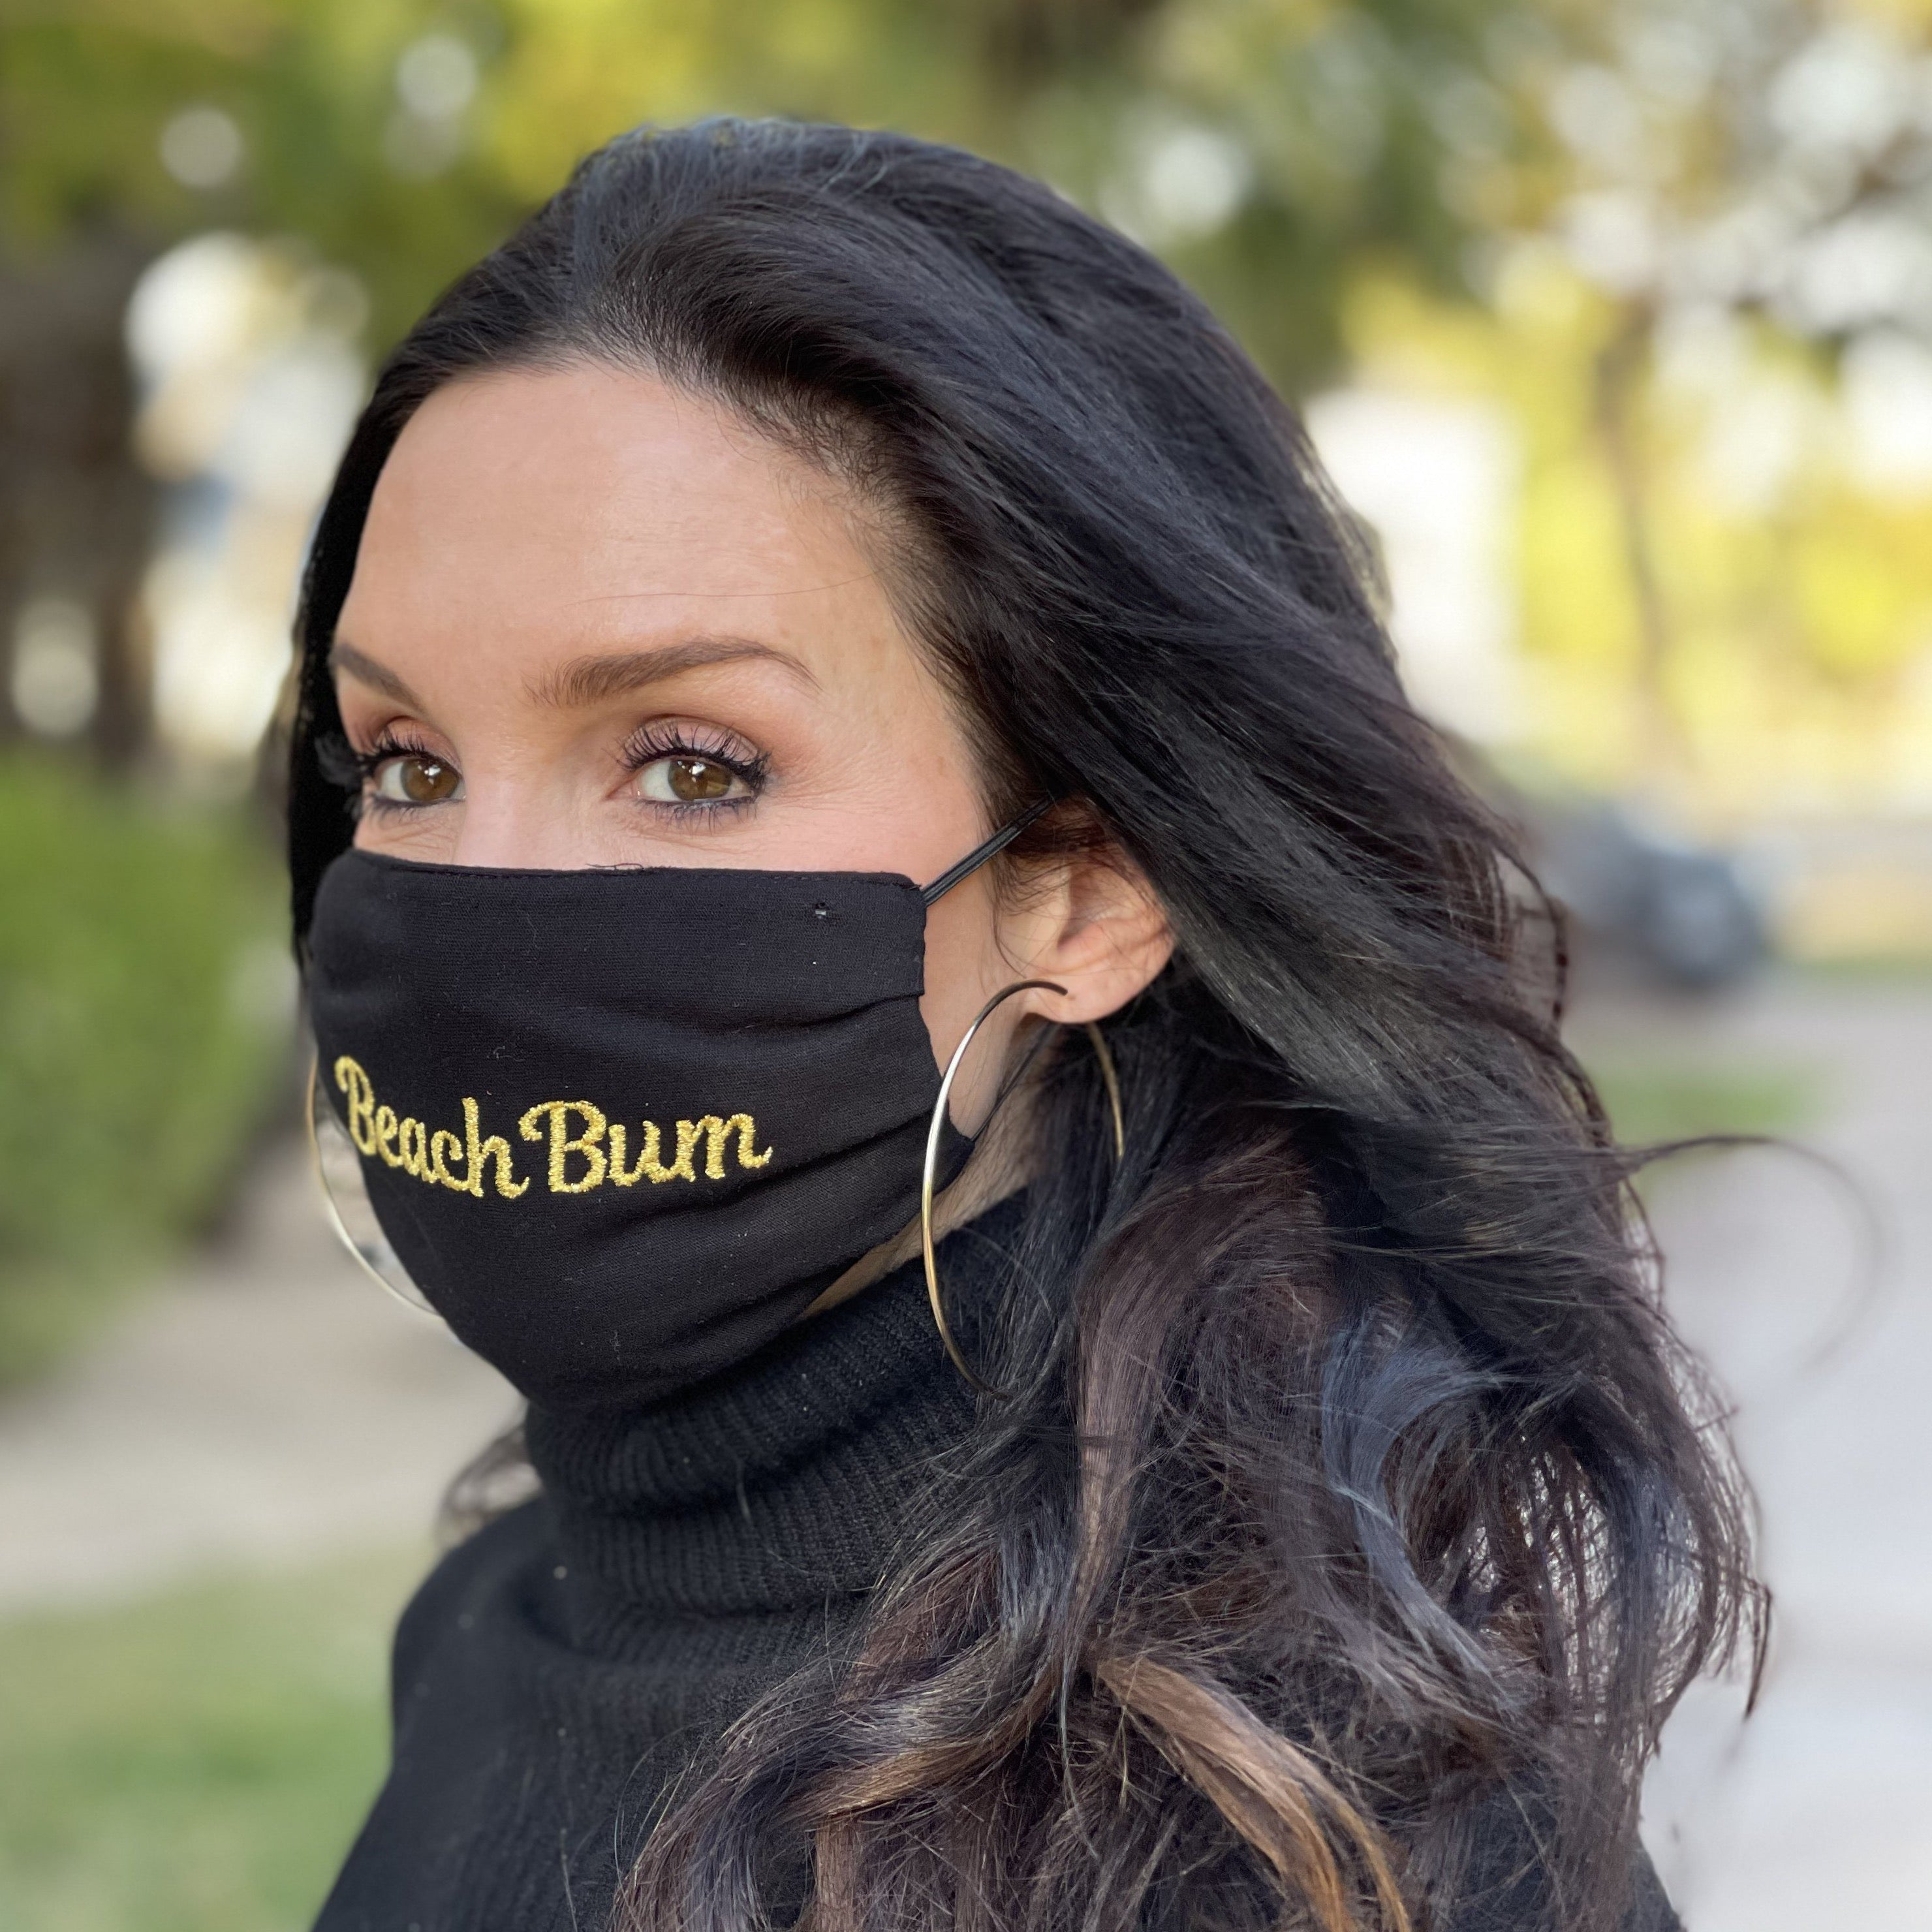 Beach Bum Mask in Black